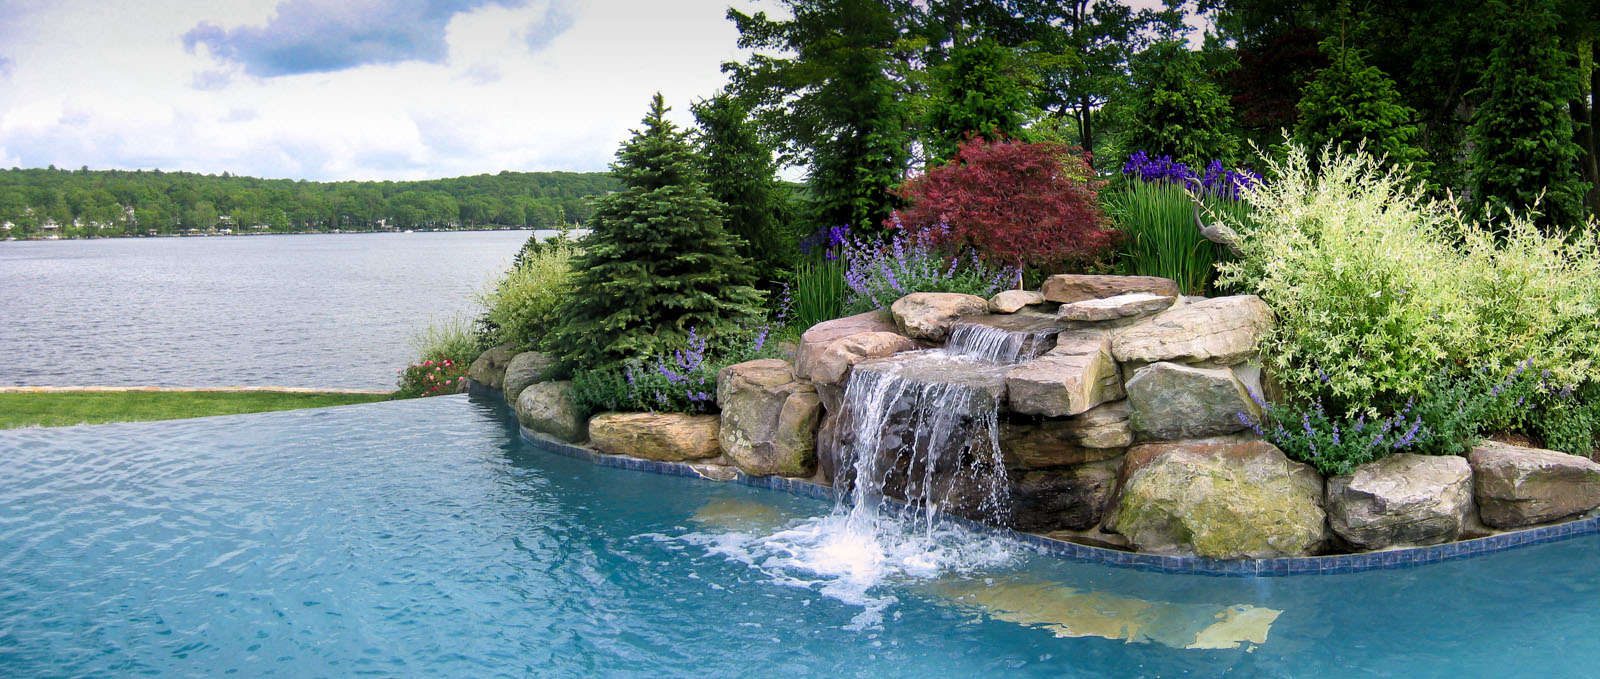 planting design around pool waterfall